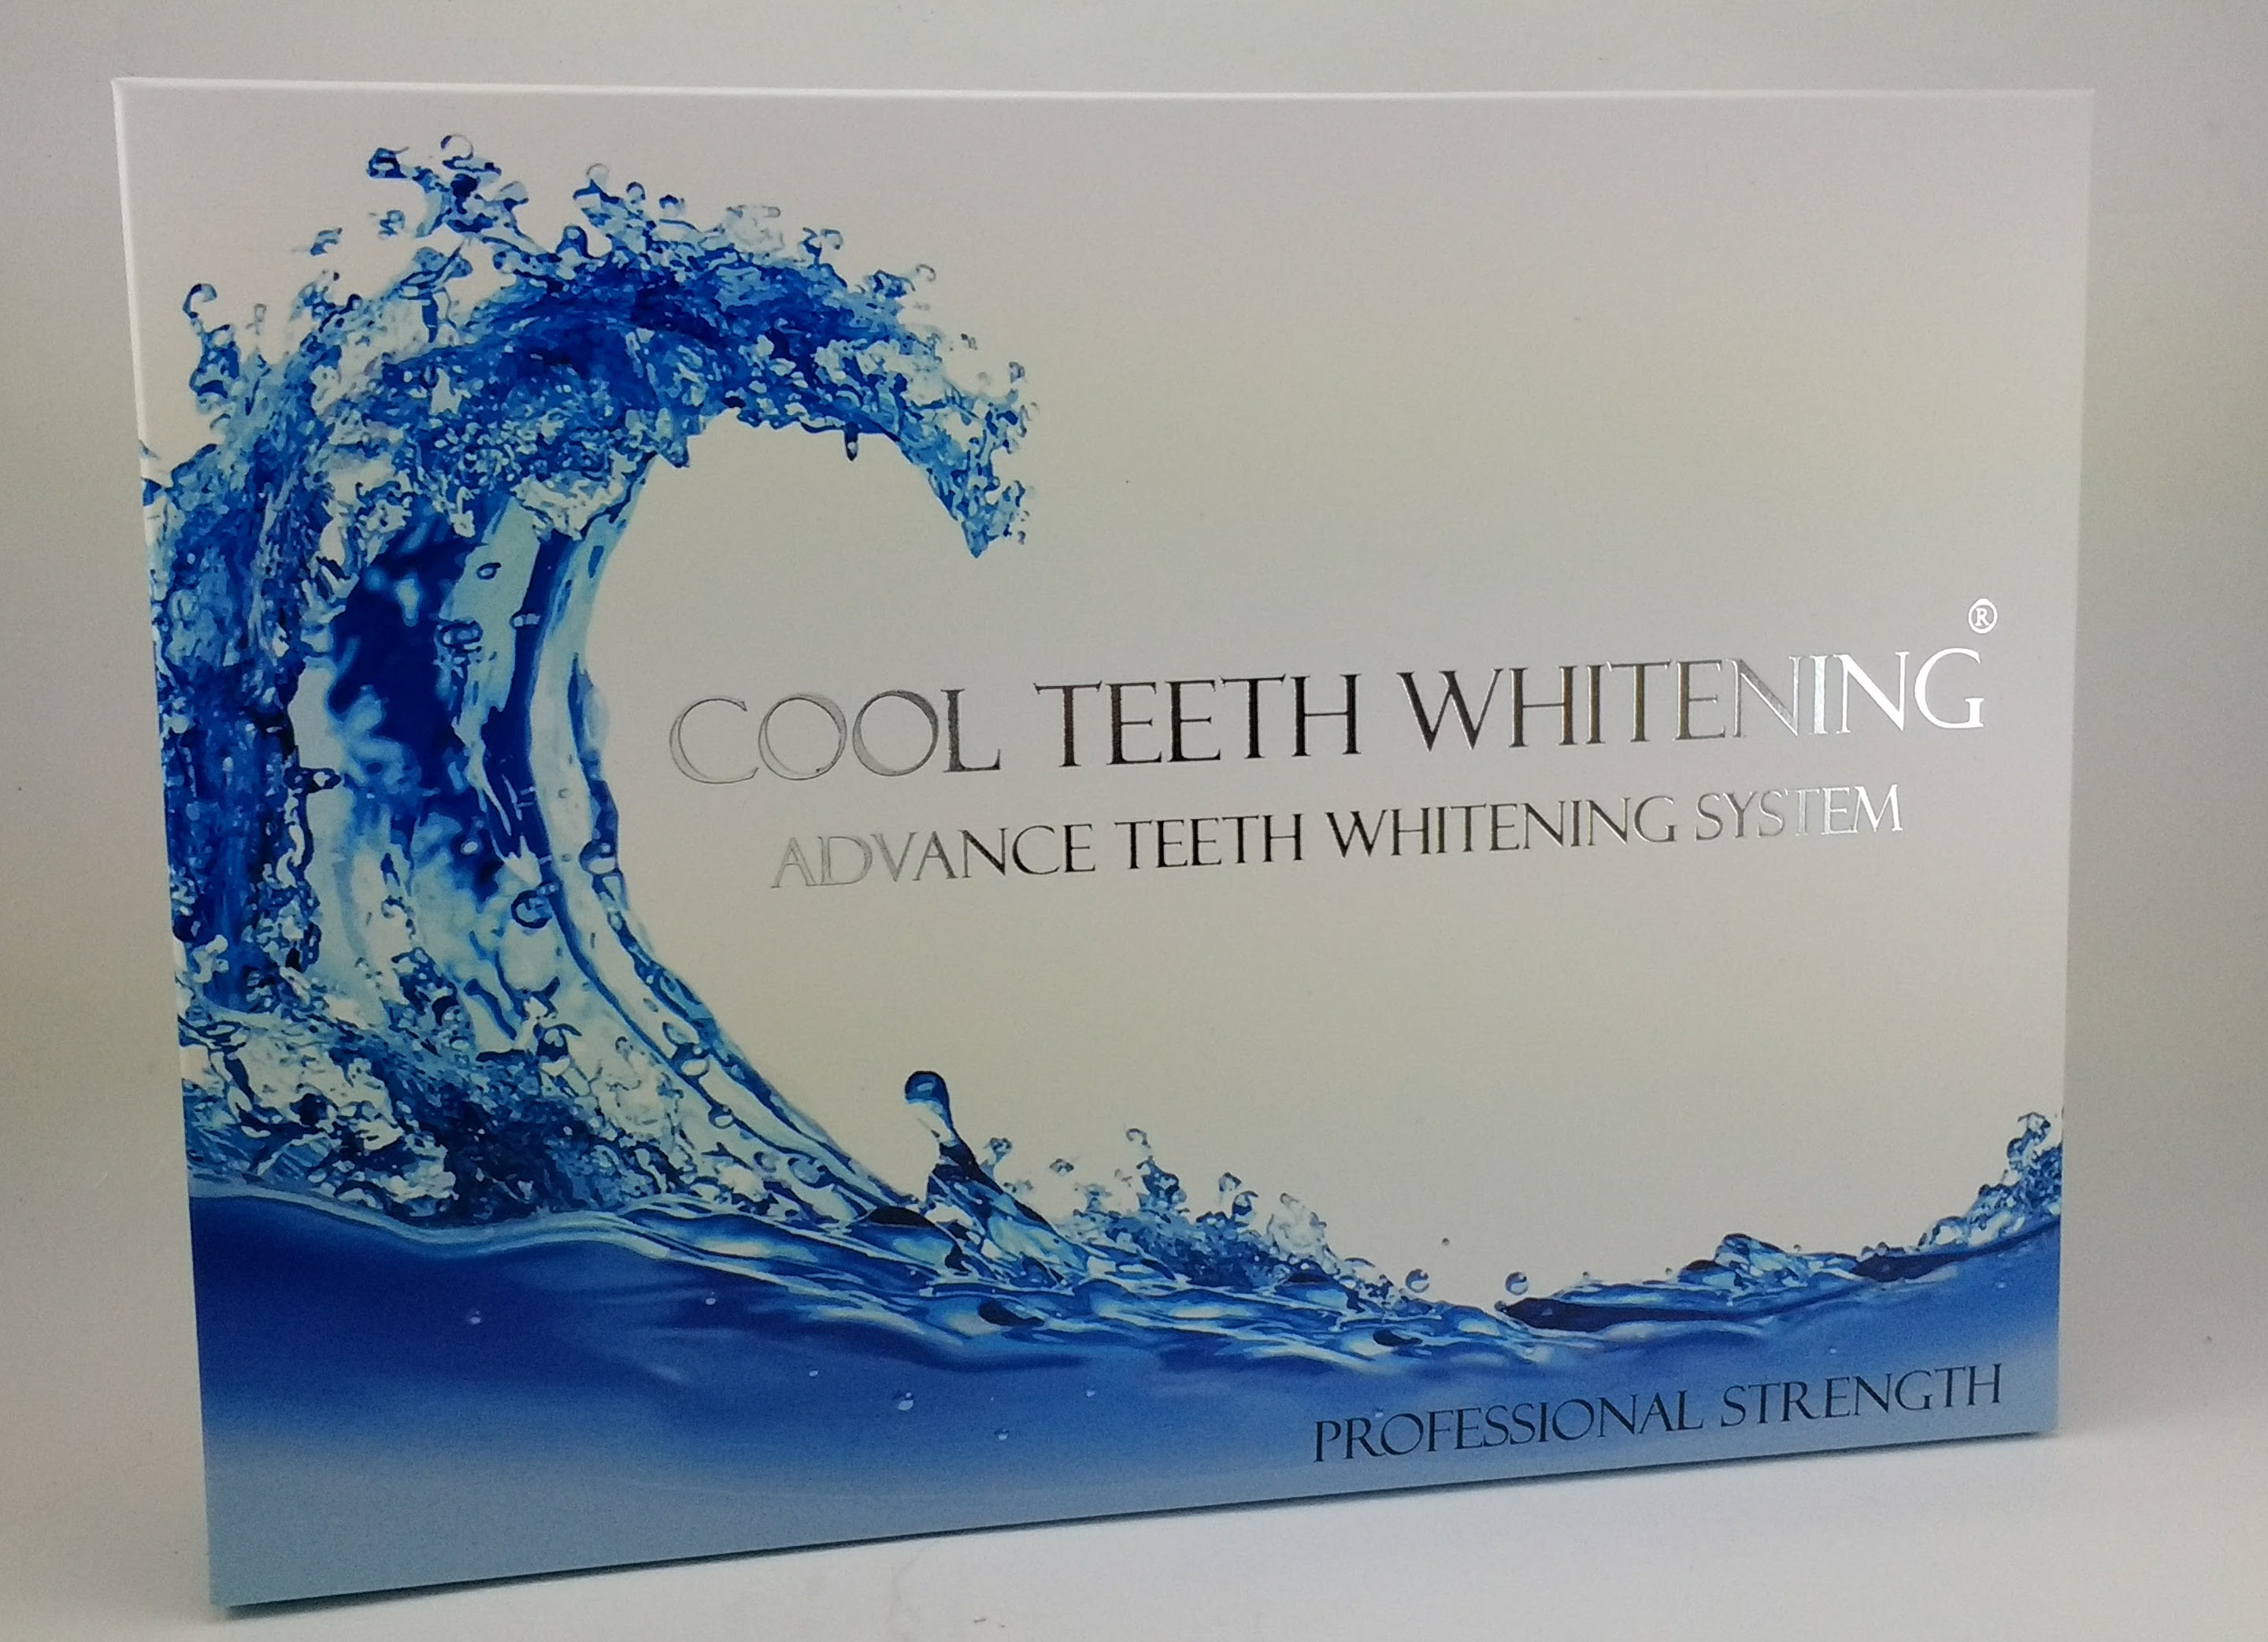 Cool teeth whitening page 3366 at home teeth whitening kits at home cool teeth whitening kit 6 months supply with light and trays fandeluxe Choice Image